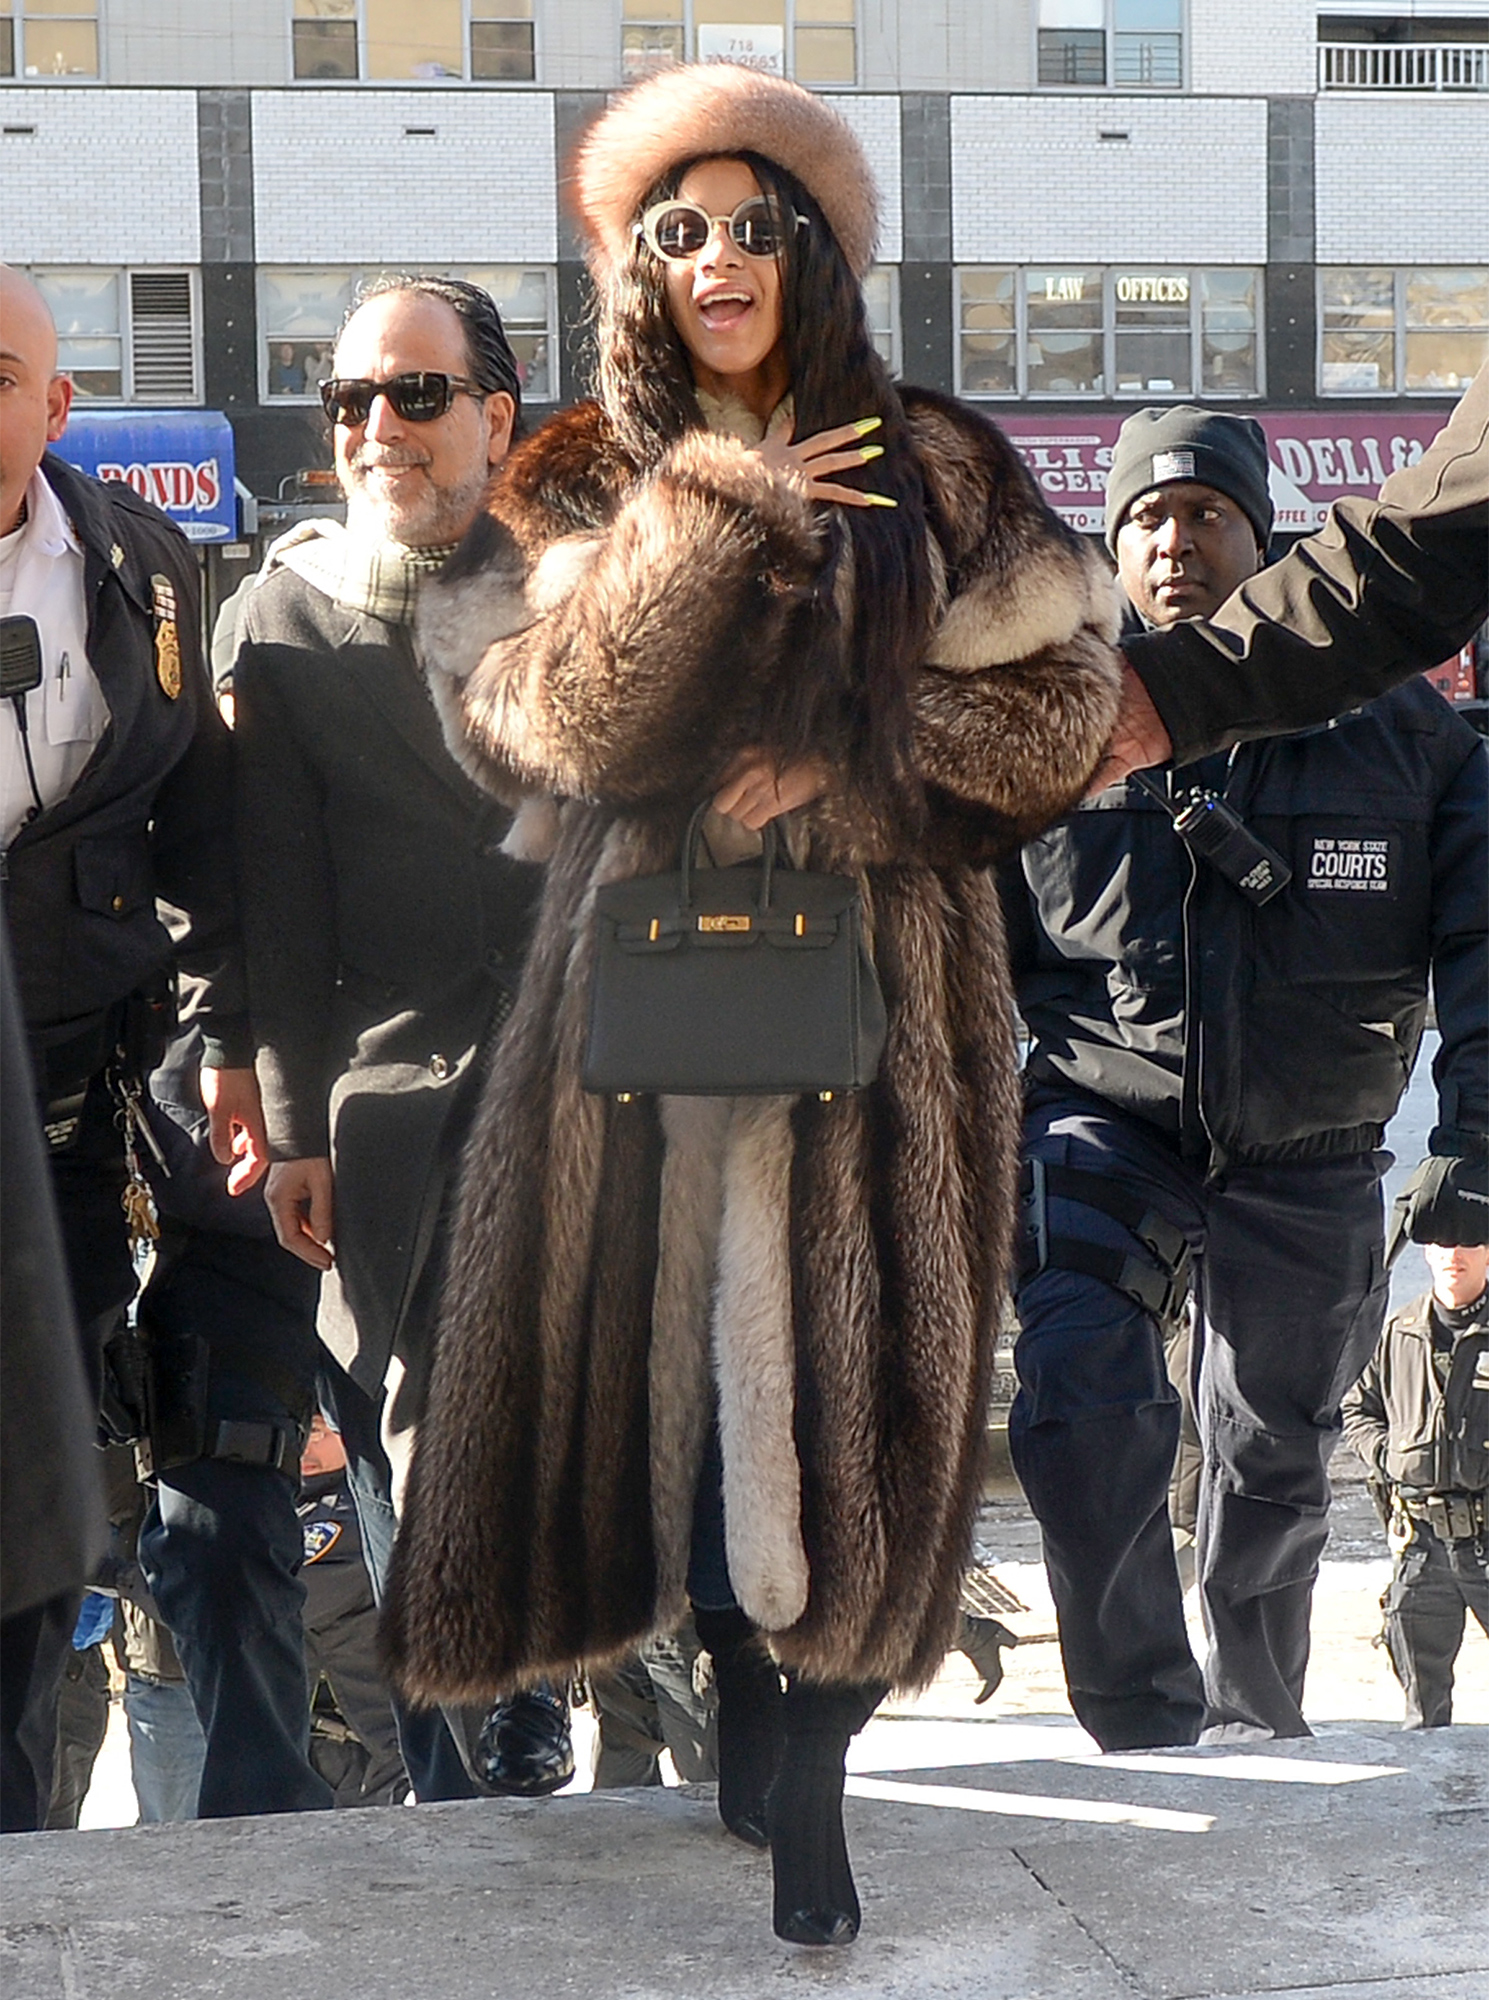 Cardi B Arrives At Queens County Criminal Court In New York Over Charges In Connection With An Alleged Assault At Stripclub In Queens